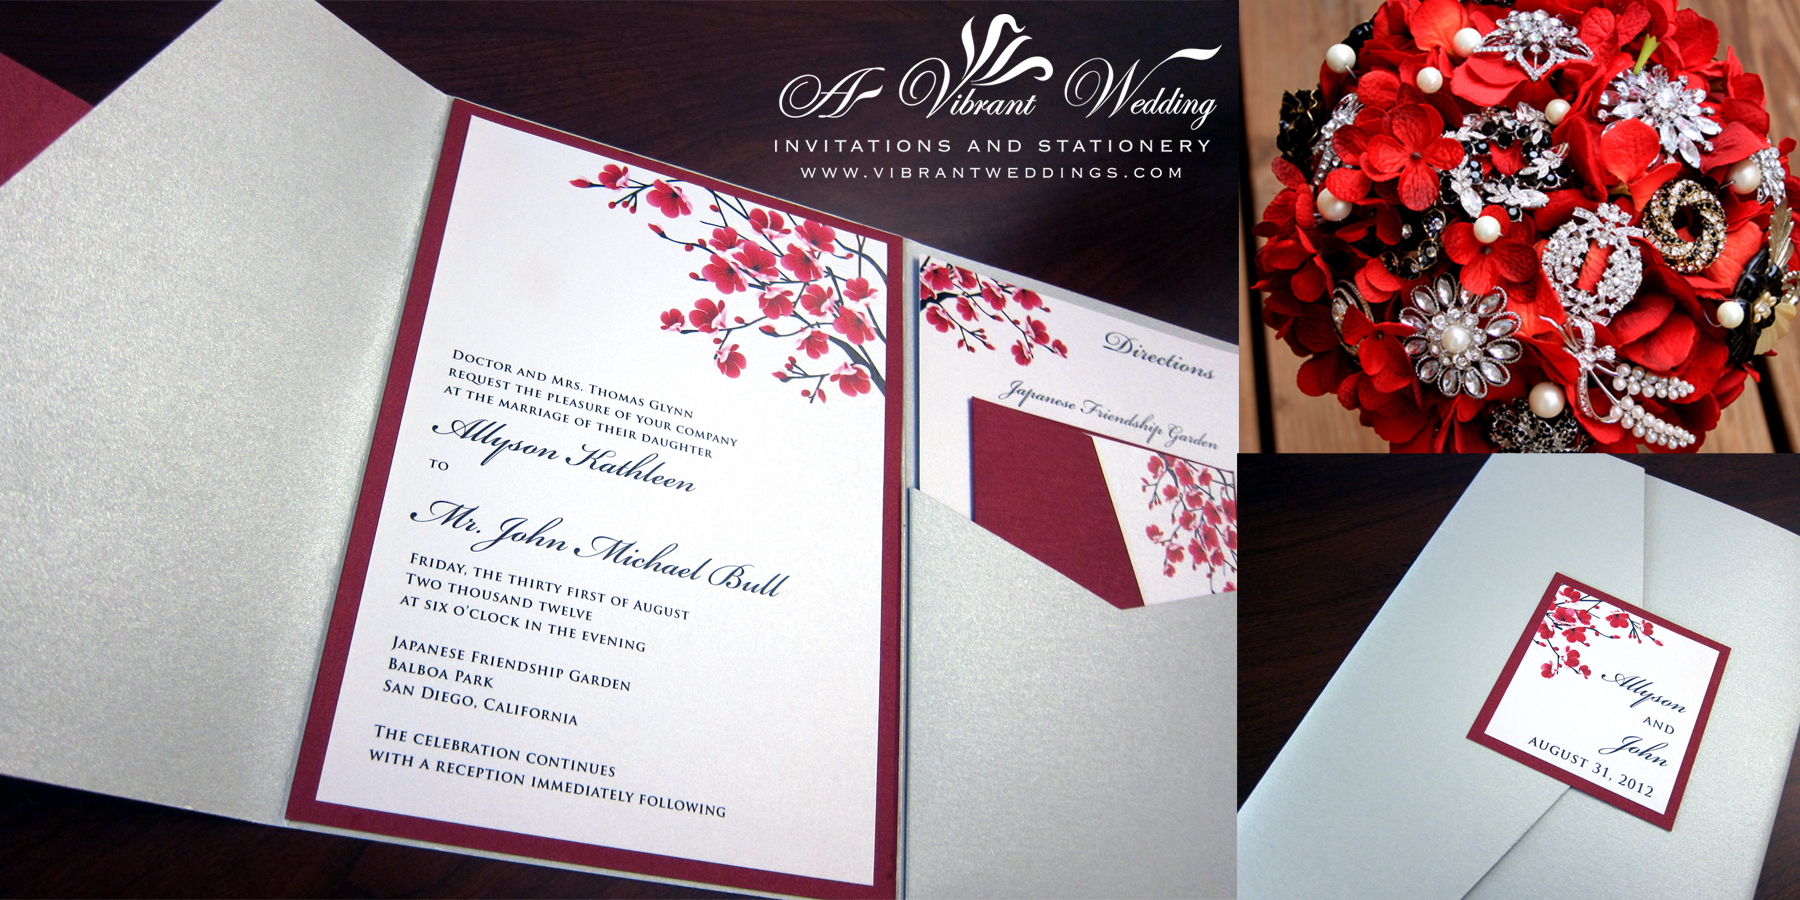 red designs � a vibrant wedding